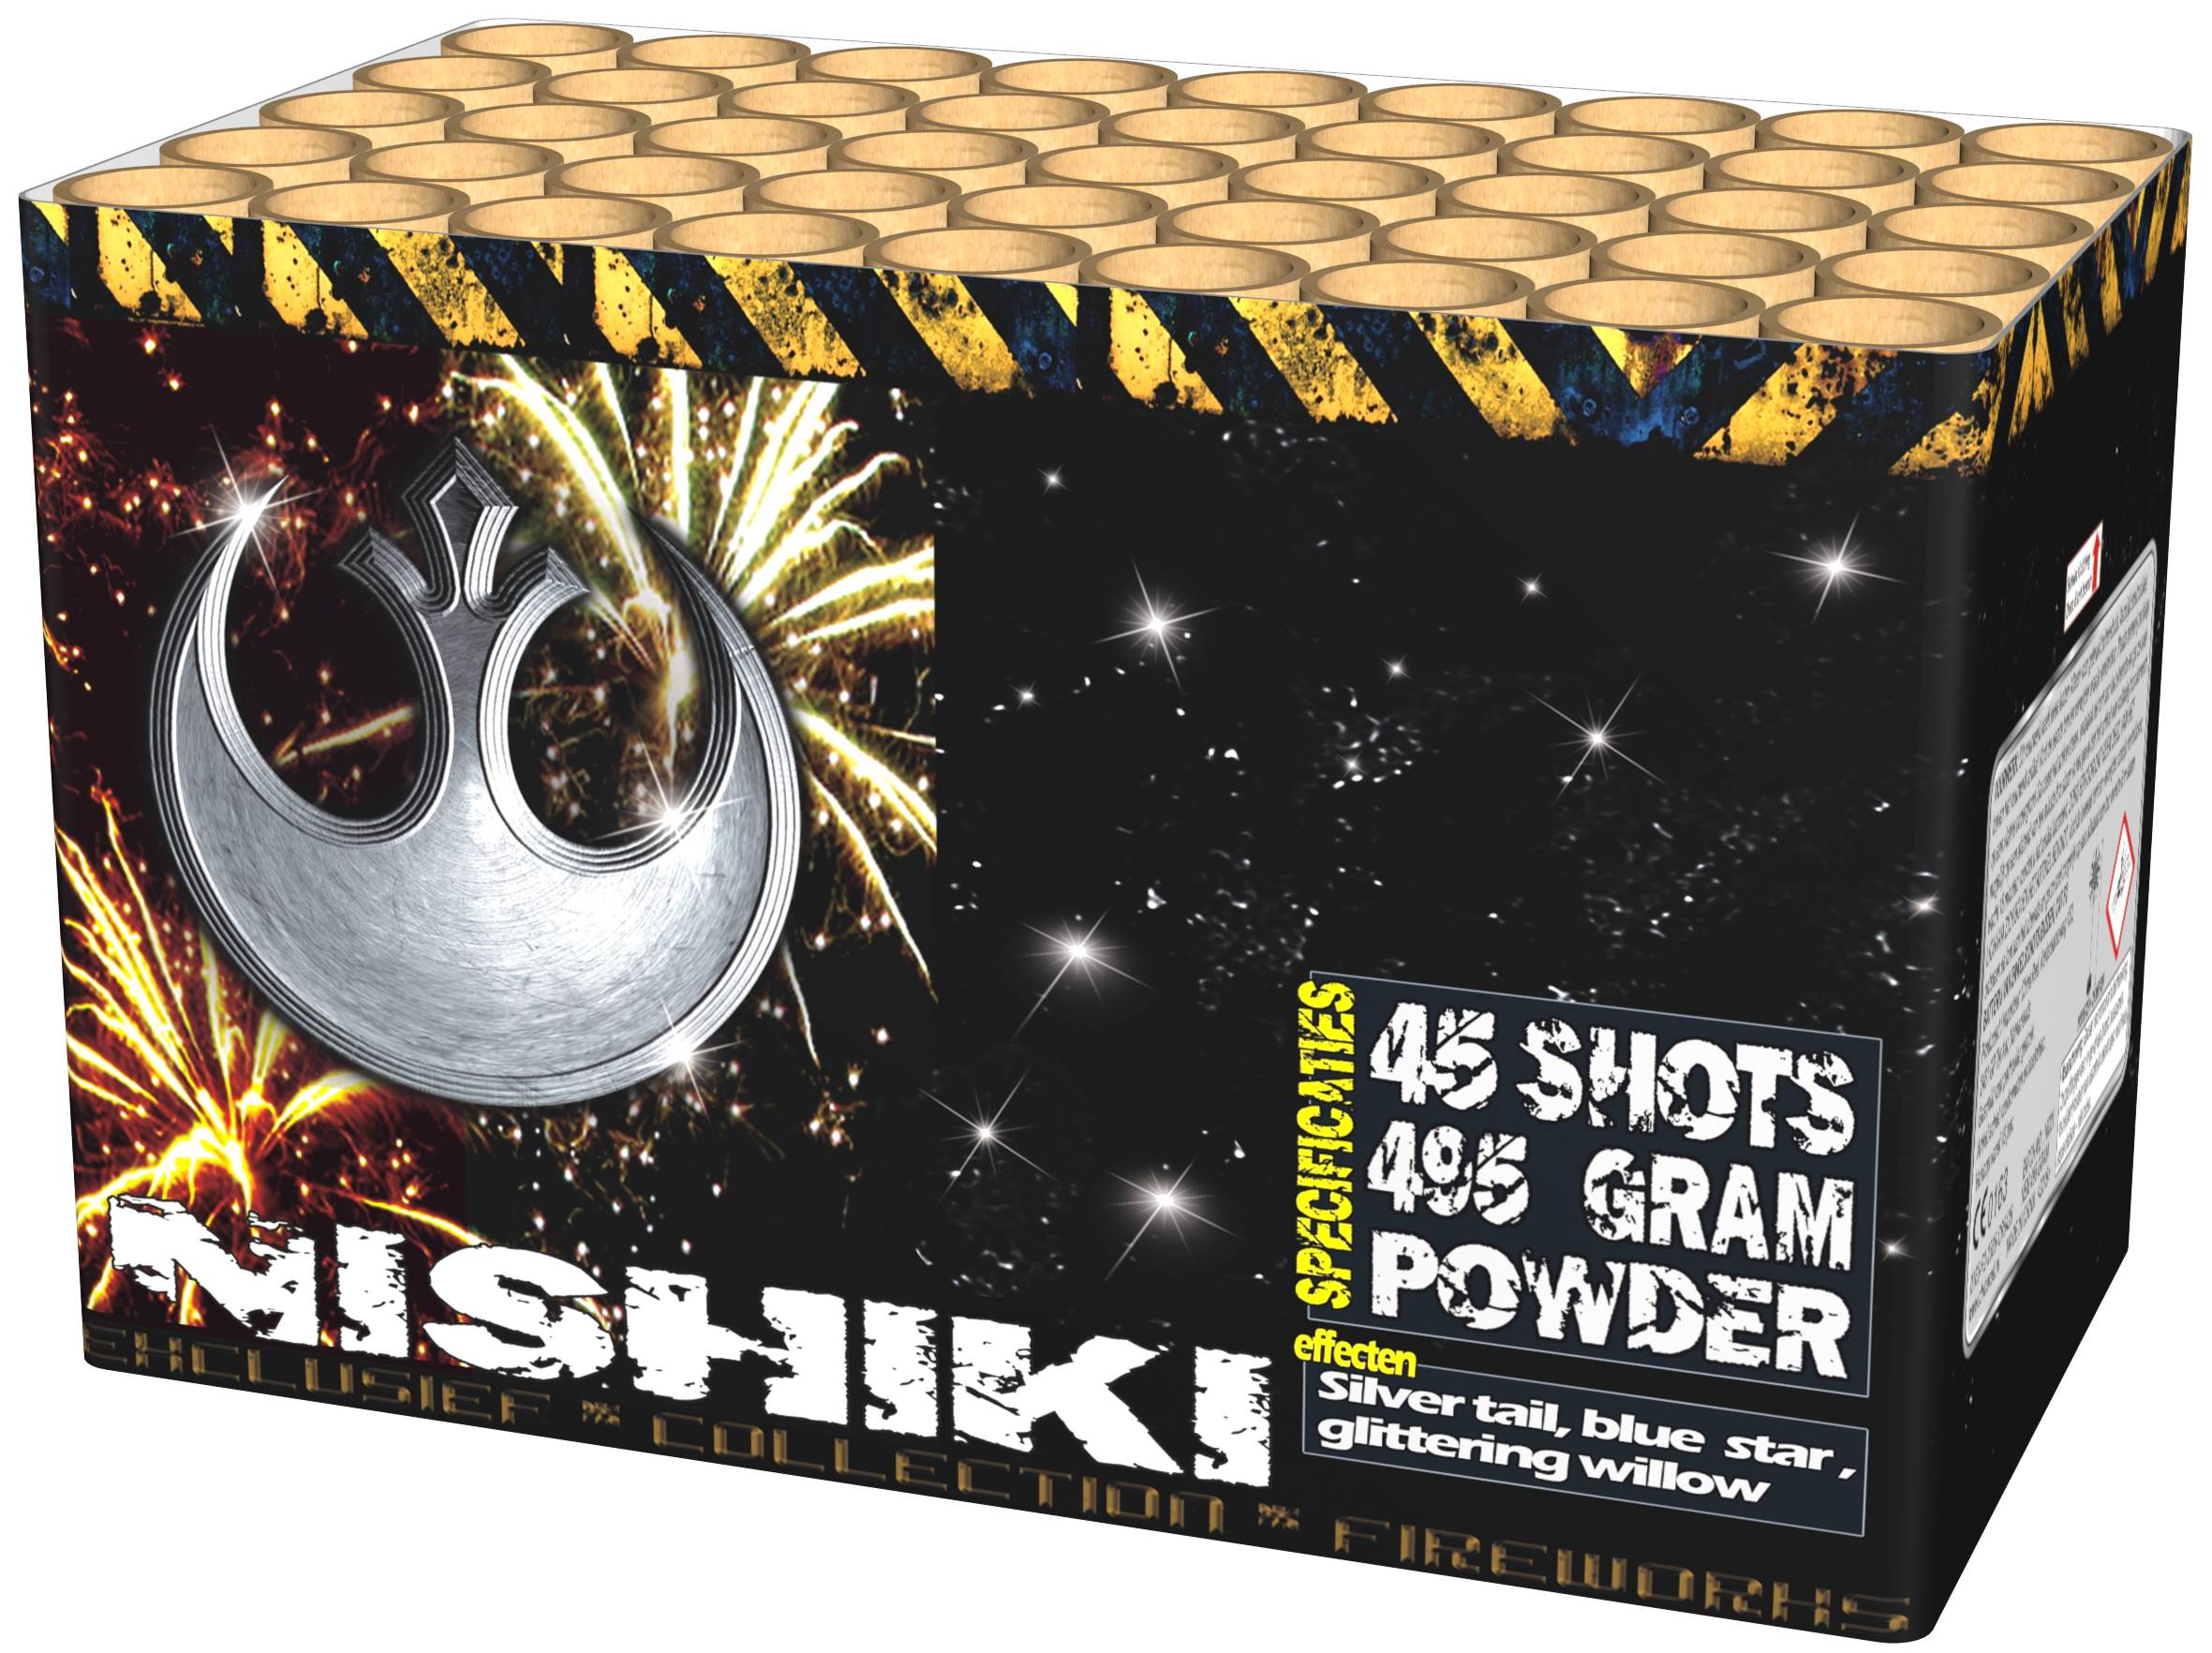 Nishiki powercake 45 shots 500 gram ky3725 china red for Intratuin enschede